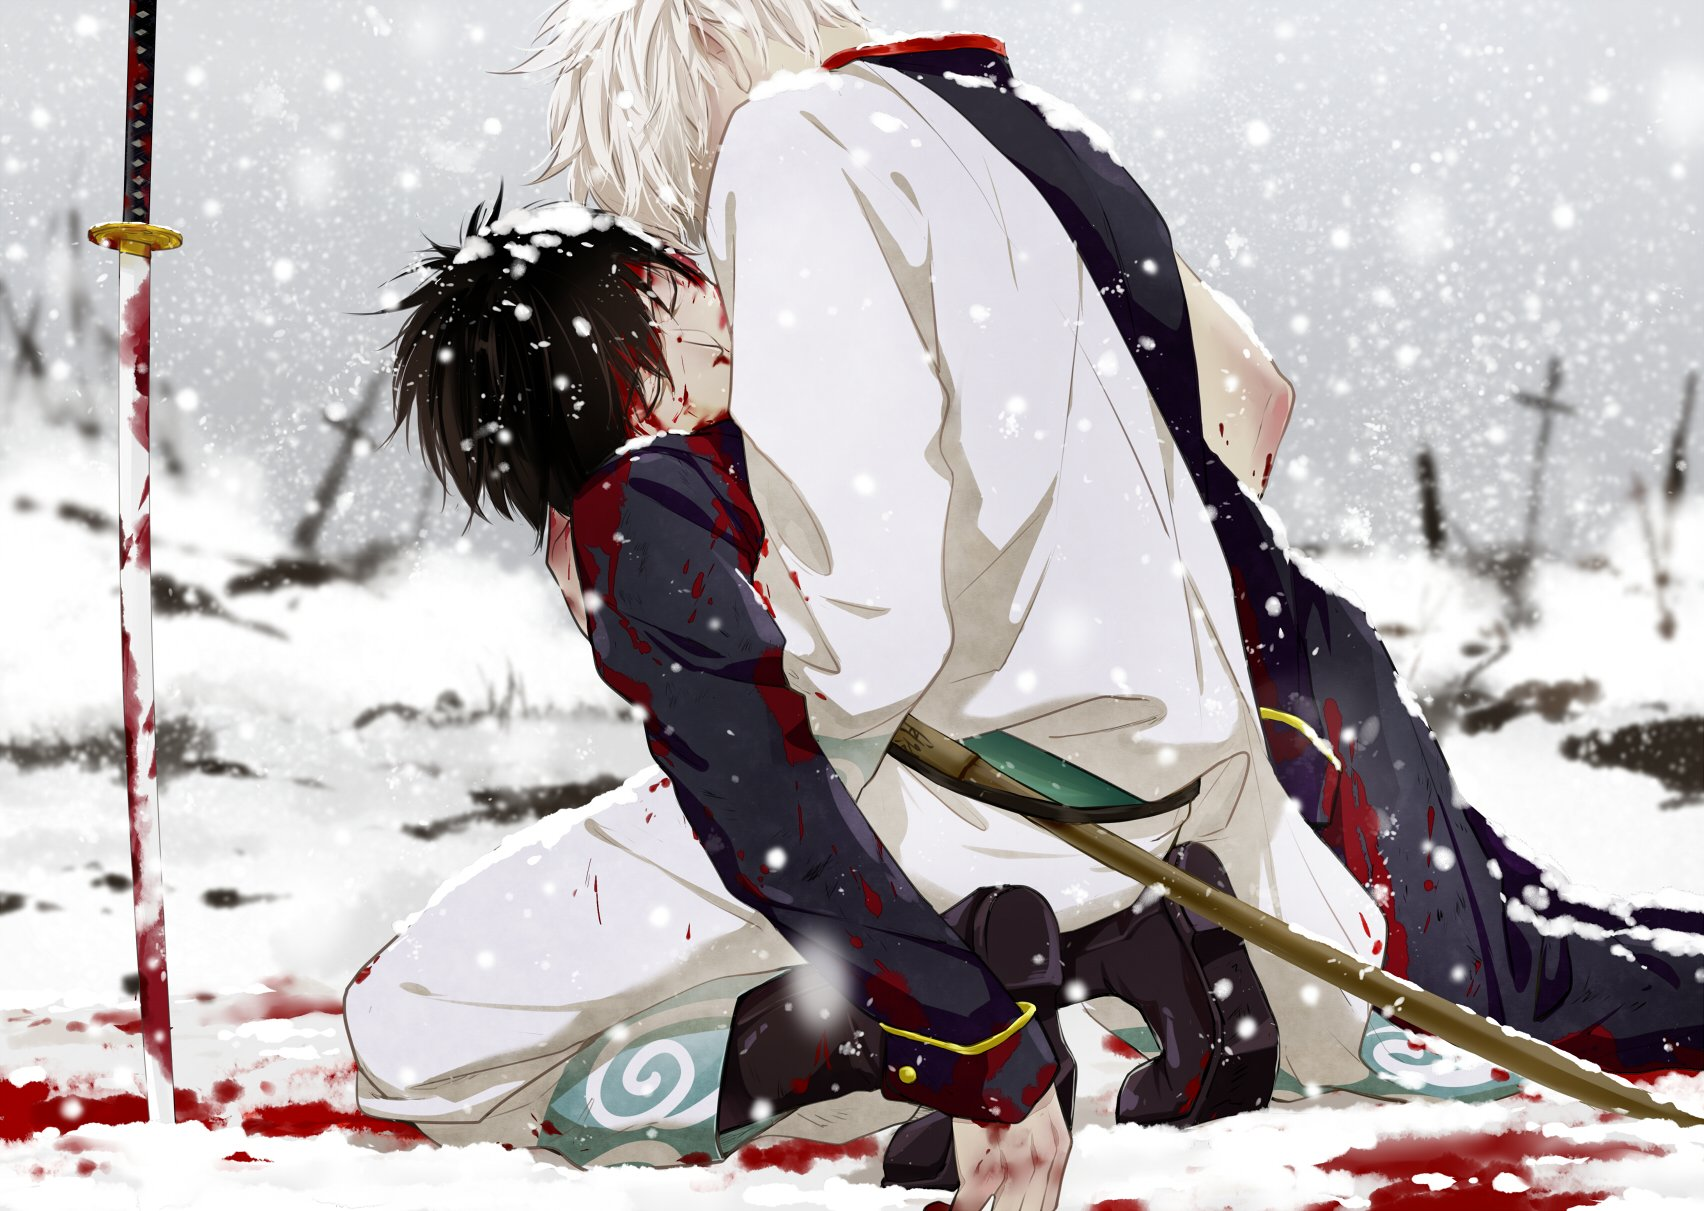 Love Boy Dead Wallpaper : Gin Tama Sakata Gintoki Hijikata Toushirou Shinsengumi Uniform (Gin Tama) Snowing wallpaper ...